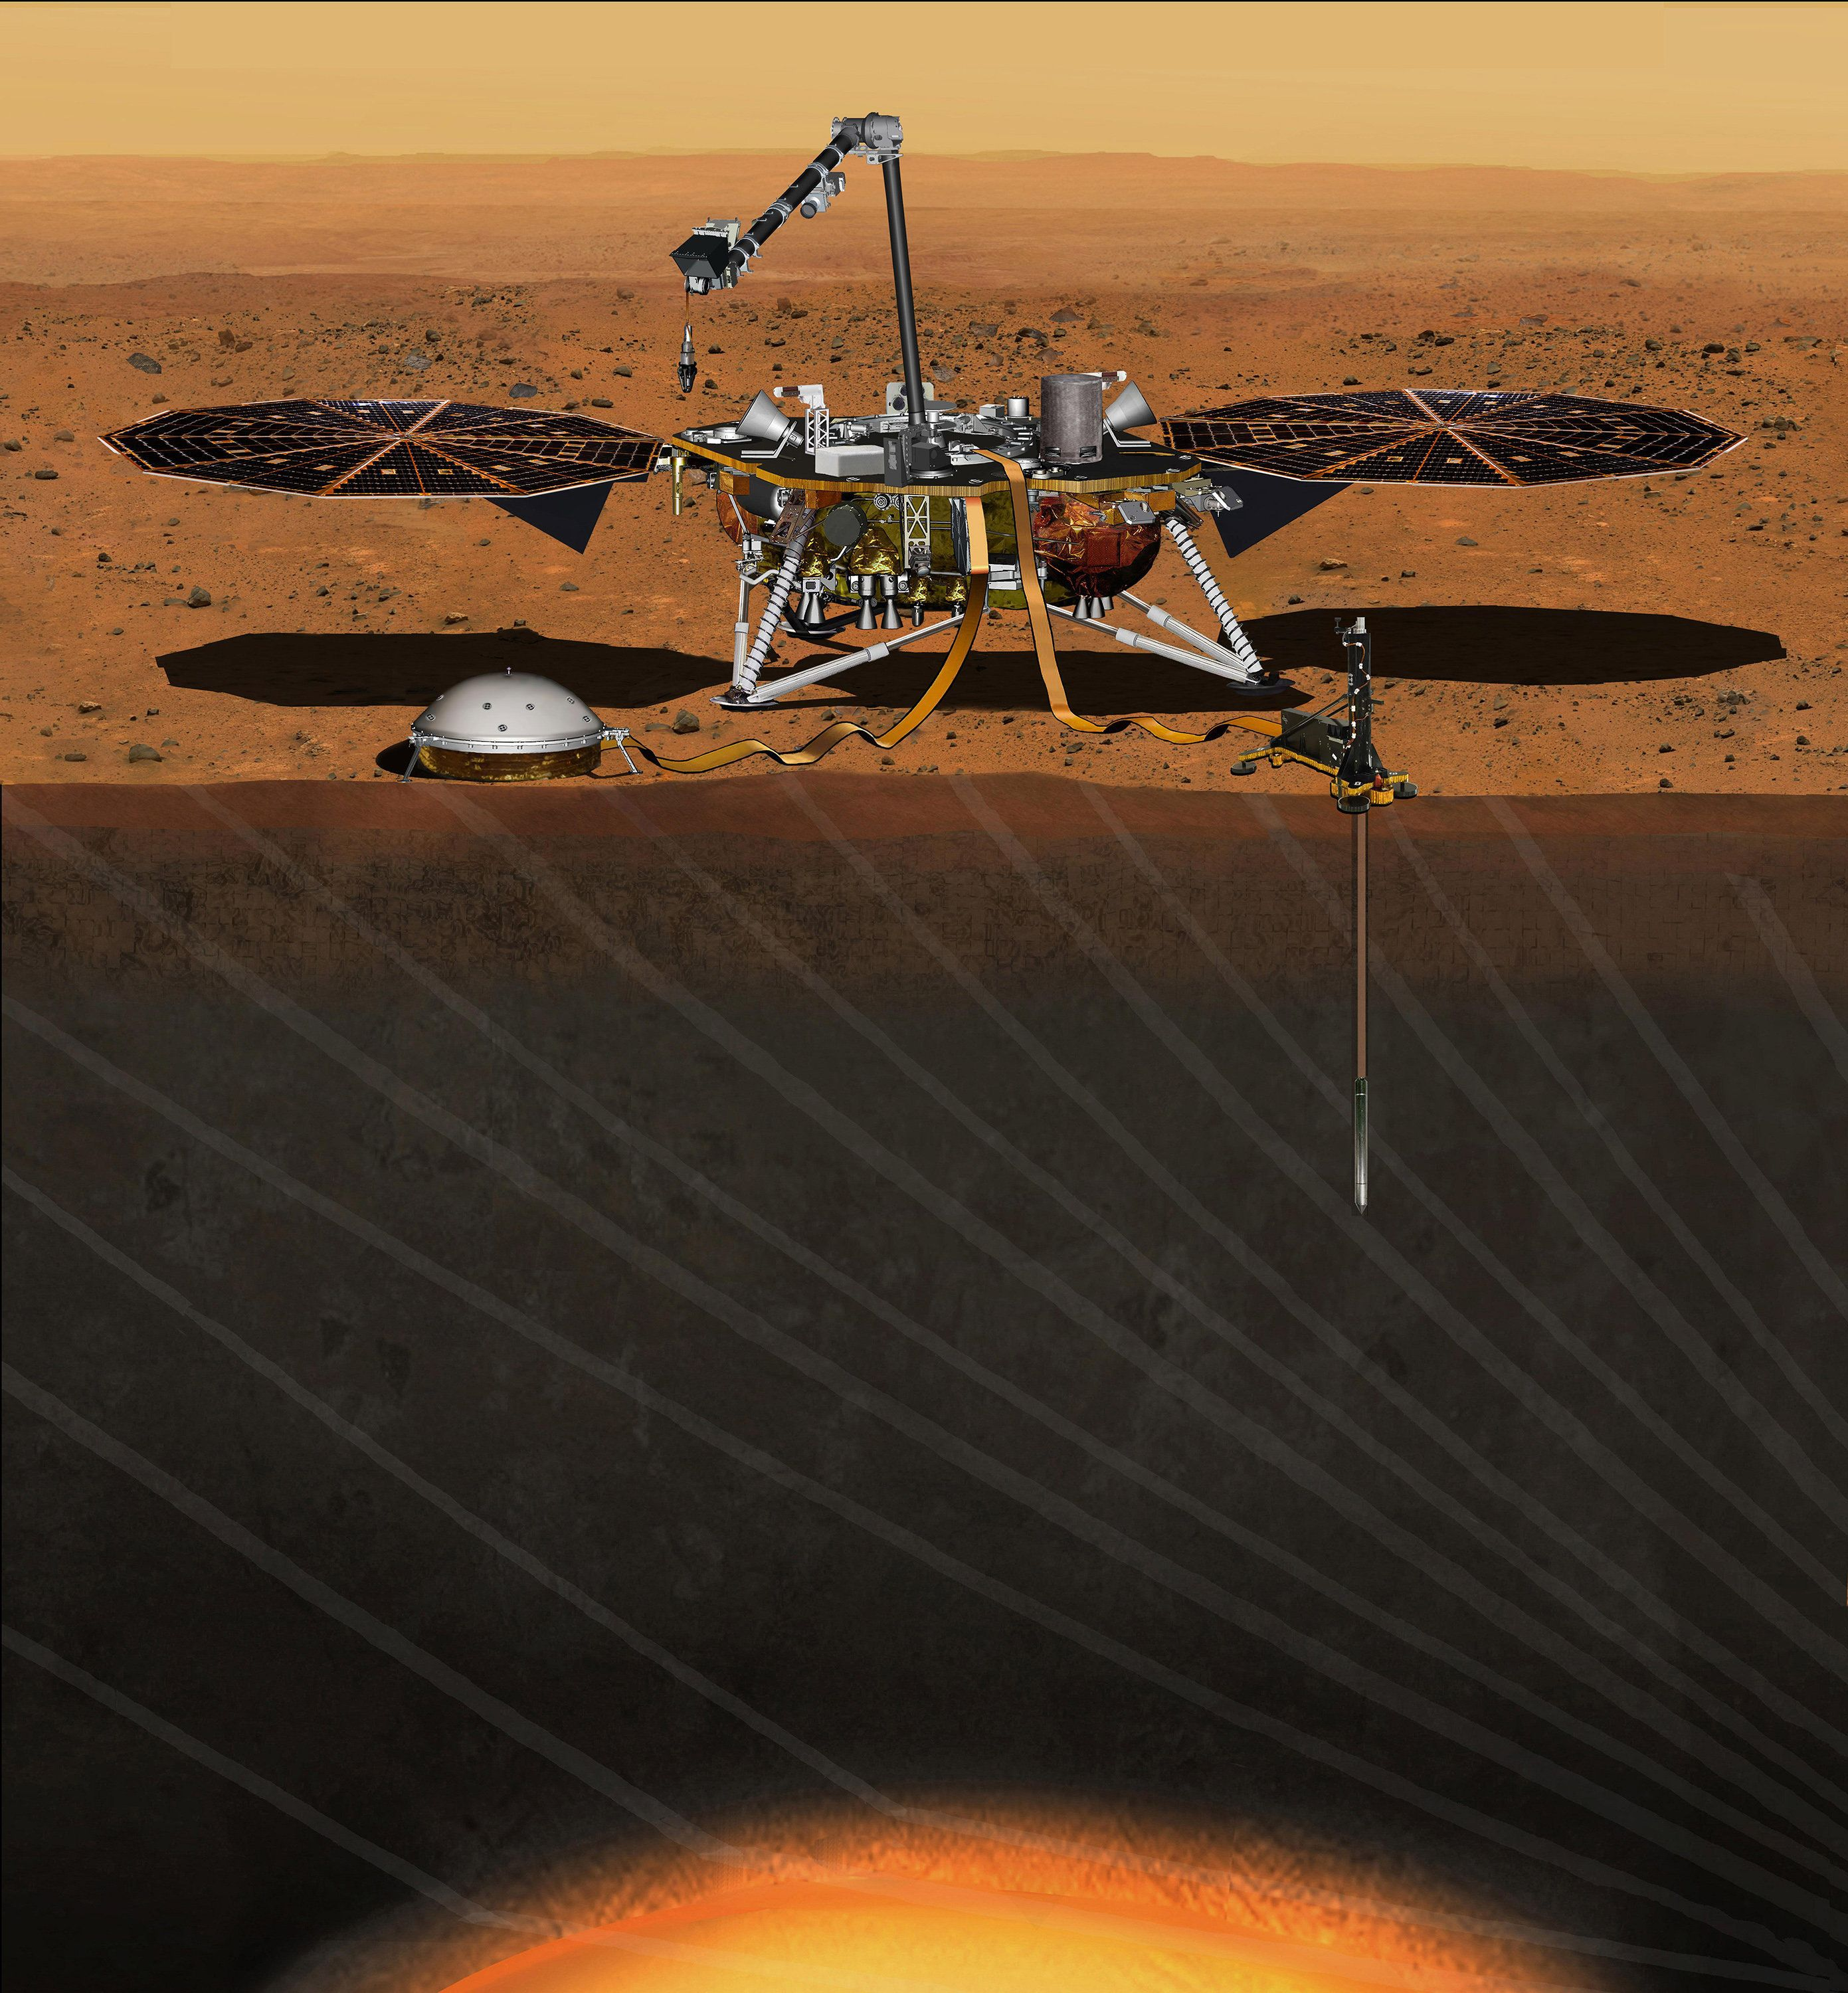 The NASA Martian lander InSight dedicated to investigating the deep interior of Mars is seen in an undated artist's rendering.  NASA on Wednesday said it would fix the InSight lander that was grounded in December due to a leak in its primary science instrument, putting the mission back on track for another launch attempt in 2018.  REUTERS/NASA/JPL-Caltech/Handout via Reuters   THIS IMAGE HAS BEEN SUPPLIED BY A THIRD PARTY. IT IS DISTRIBUTED, EXACTLY AS RECEIVED BY REUTERS, AS A SERVICE TO CLIENTS. FOR EDITORIAL USE ONLY. NOT FOR SALE FOR MARKETING OR ADVERTISING CAMPAIGNS